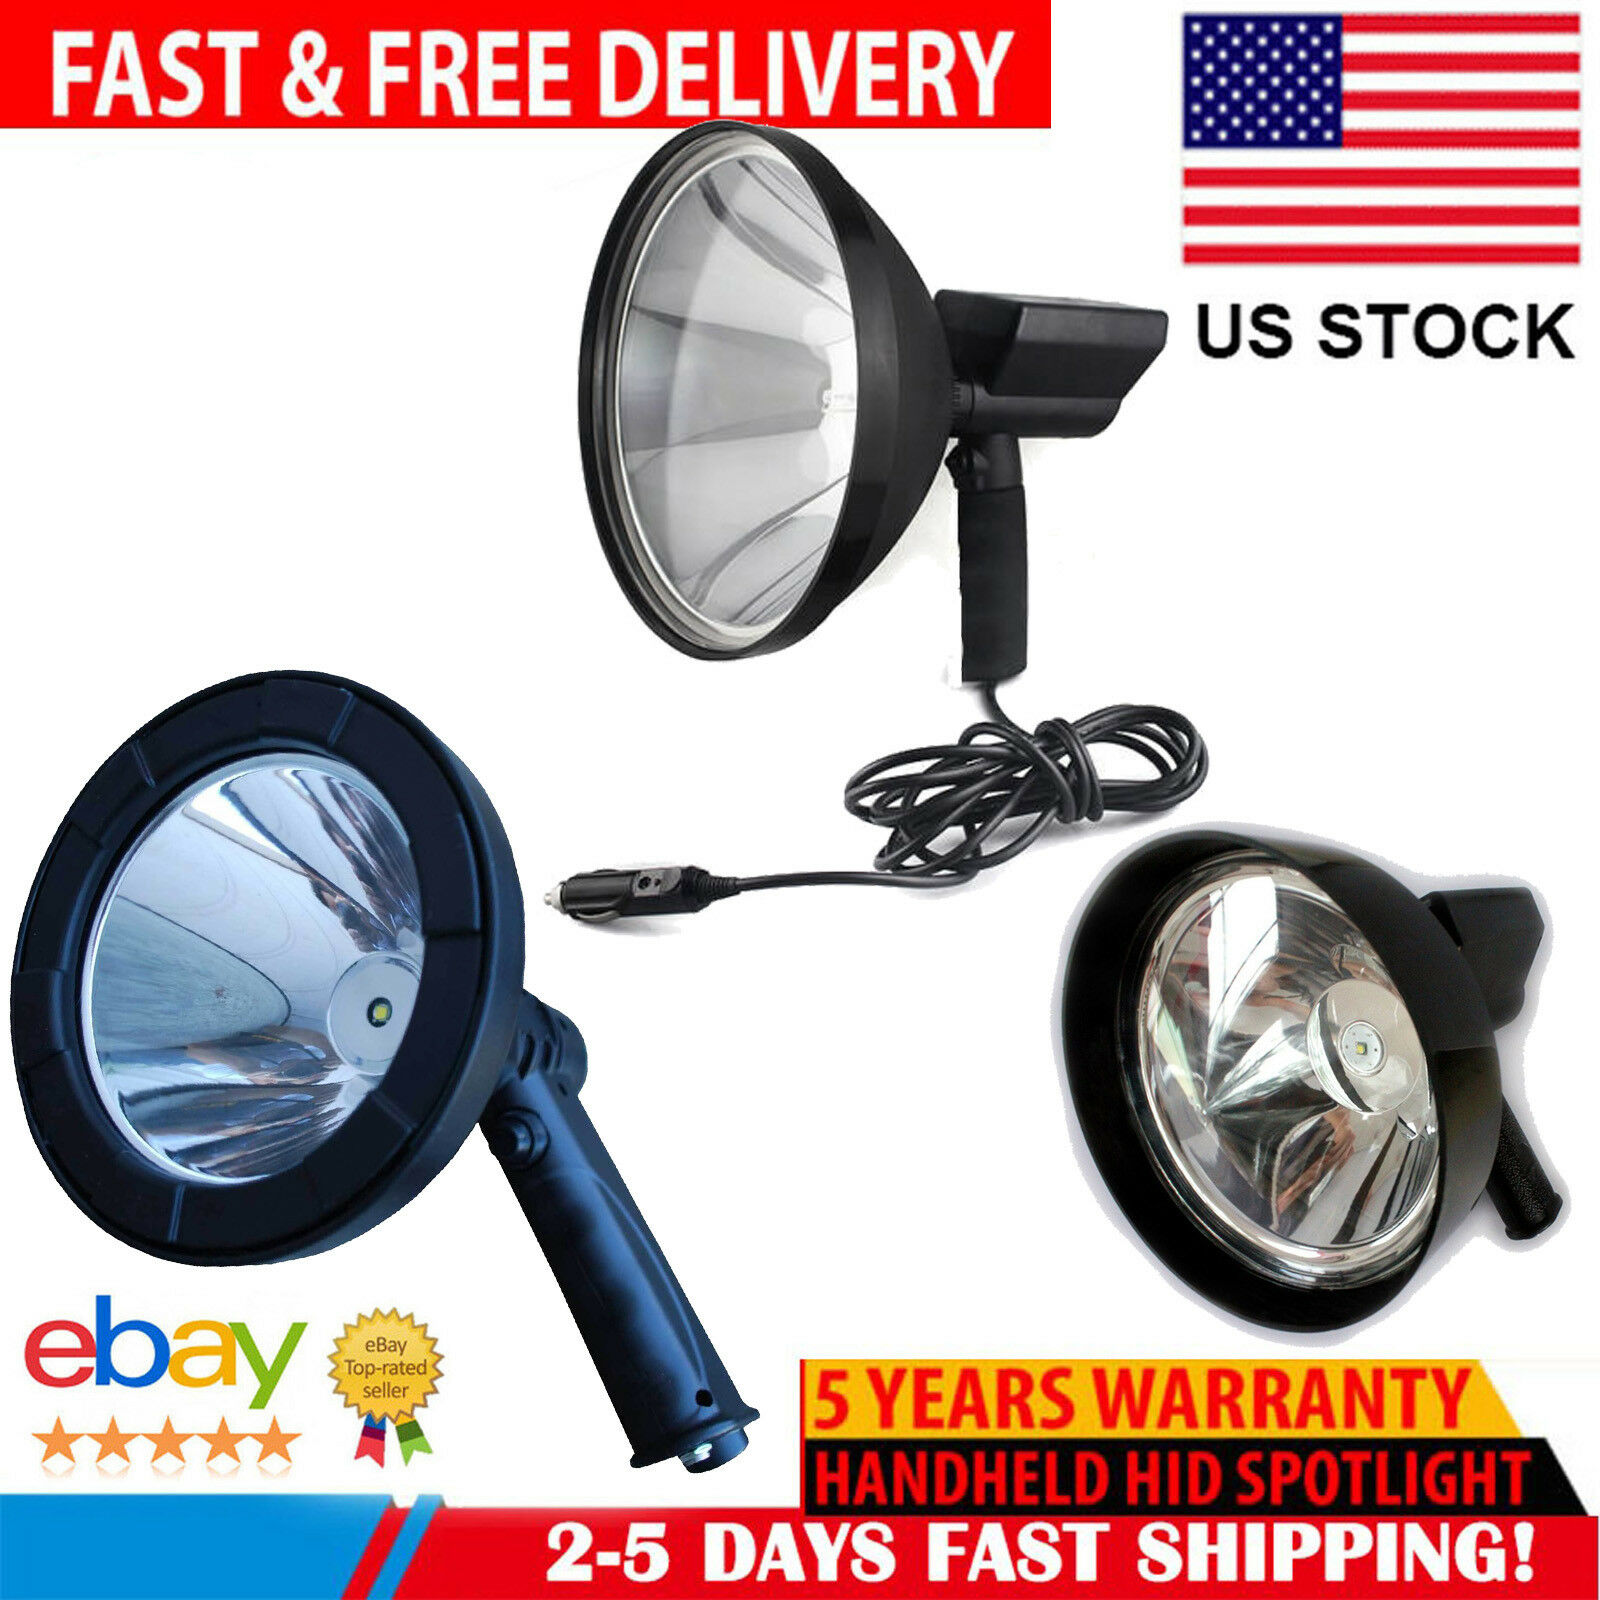 12 V Hunting Spot Lights Hand Held Handheld Deer Shining Rechargeable Spotlight